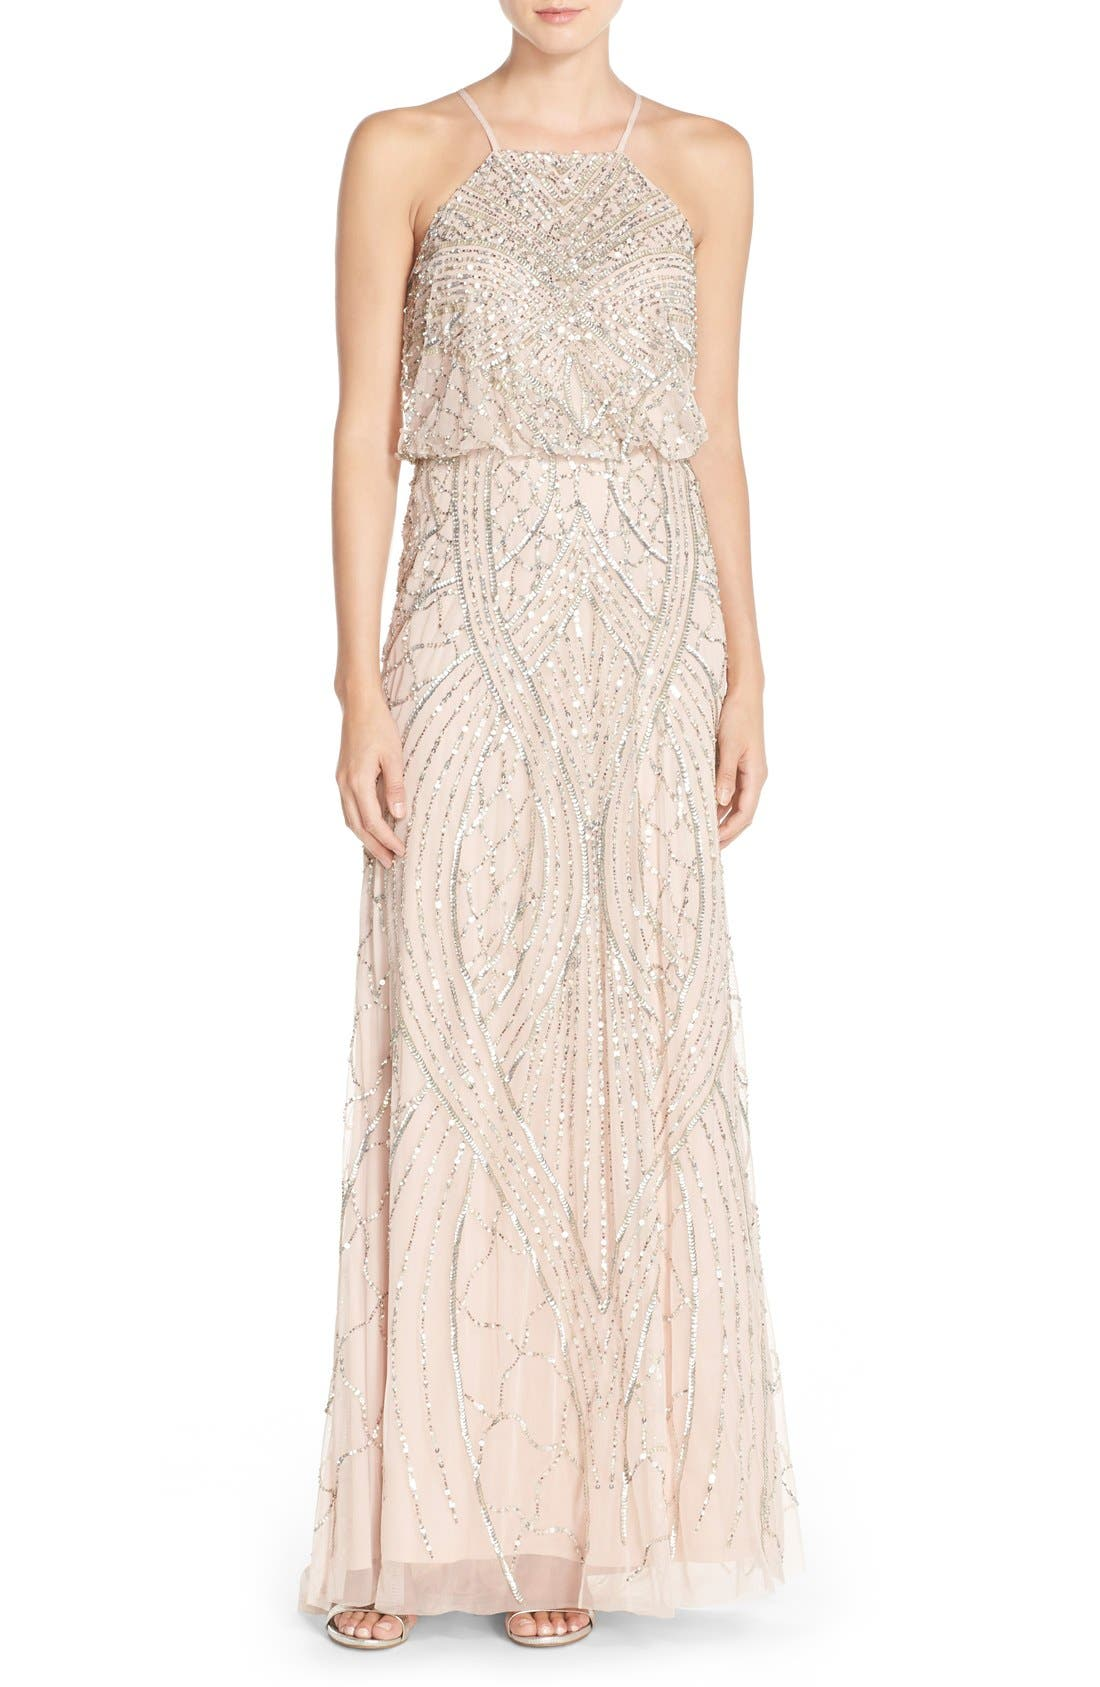 Alternate Image 1 Selected - Adrianna Papell Sequin Chiffon Blouson Gown